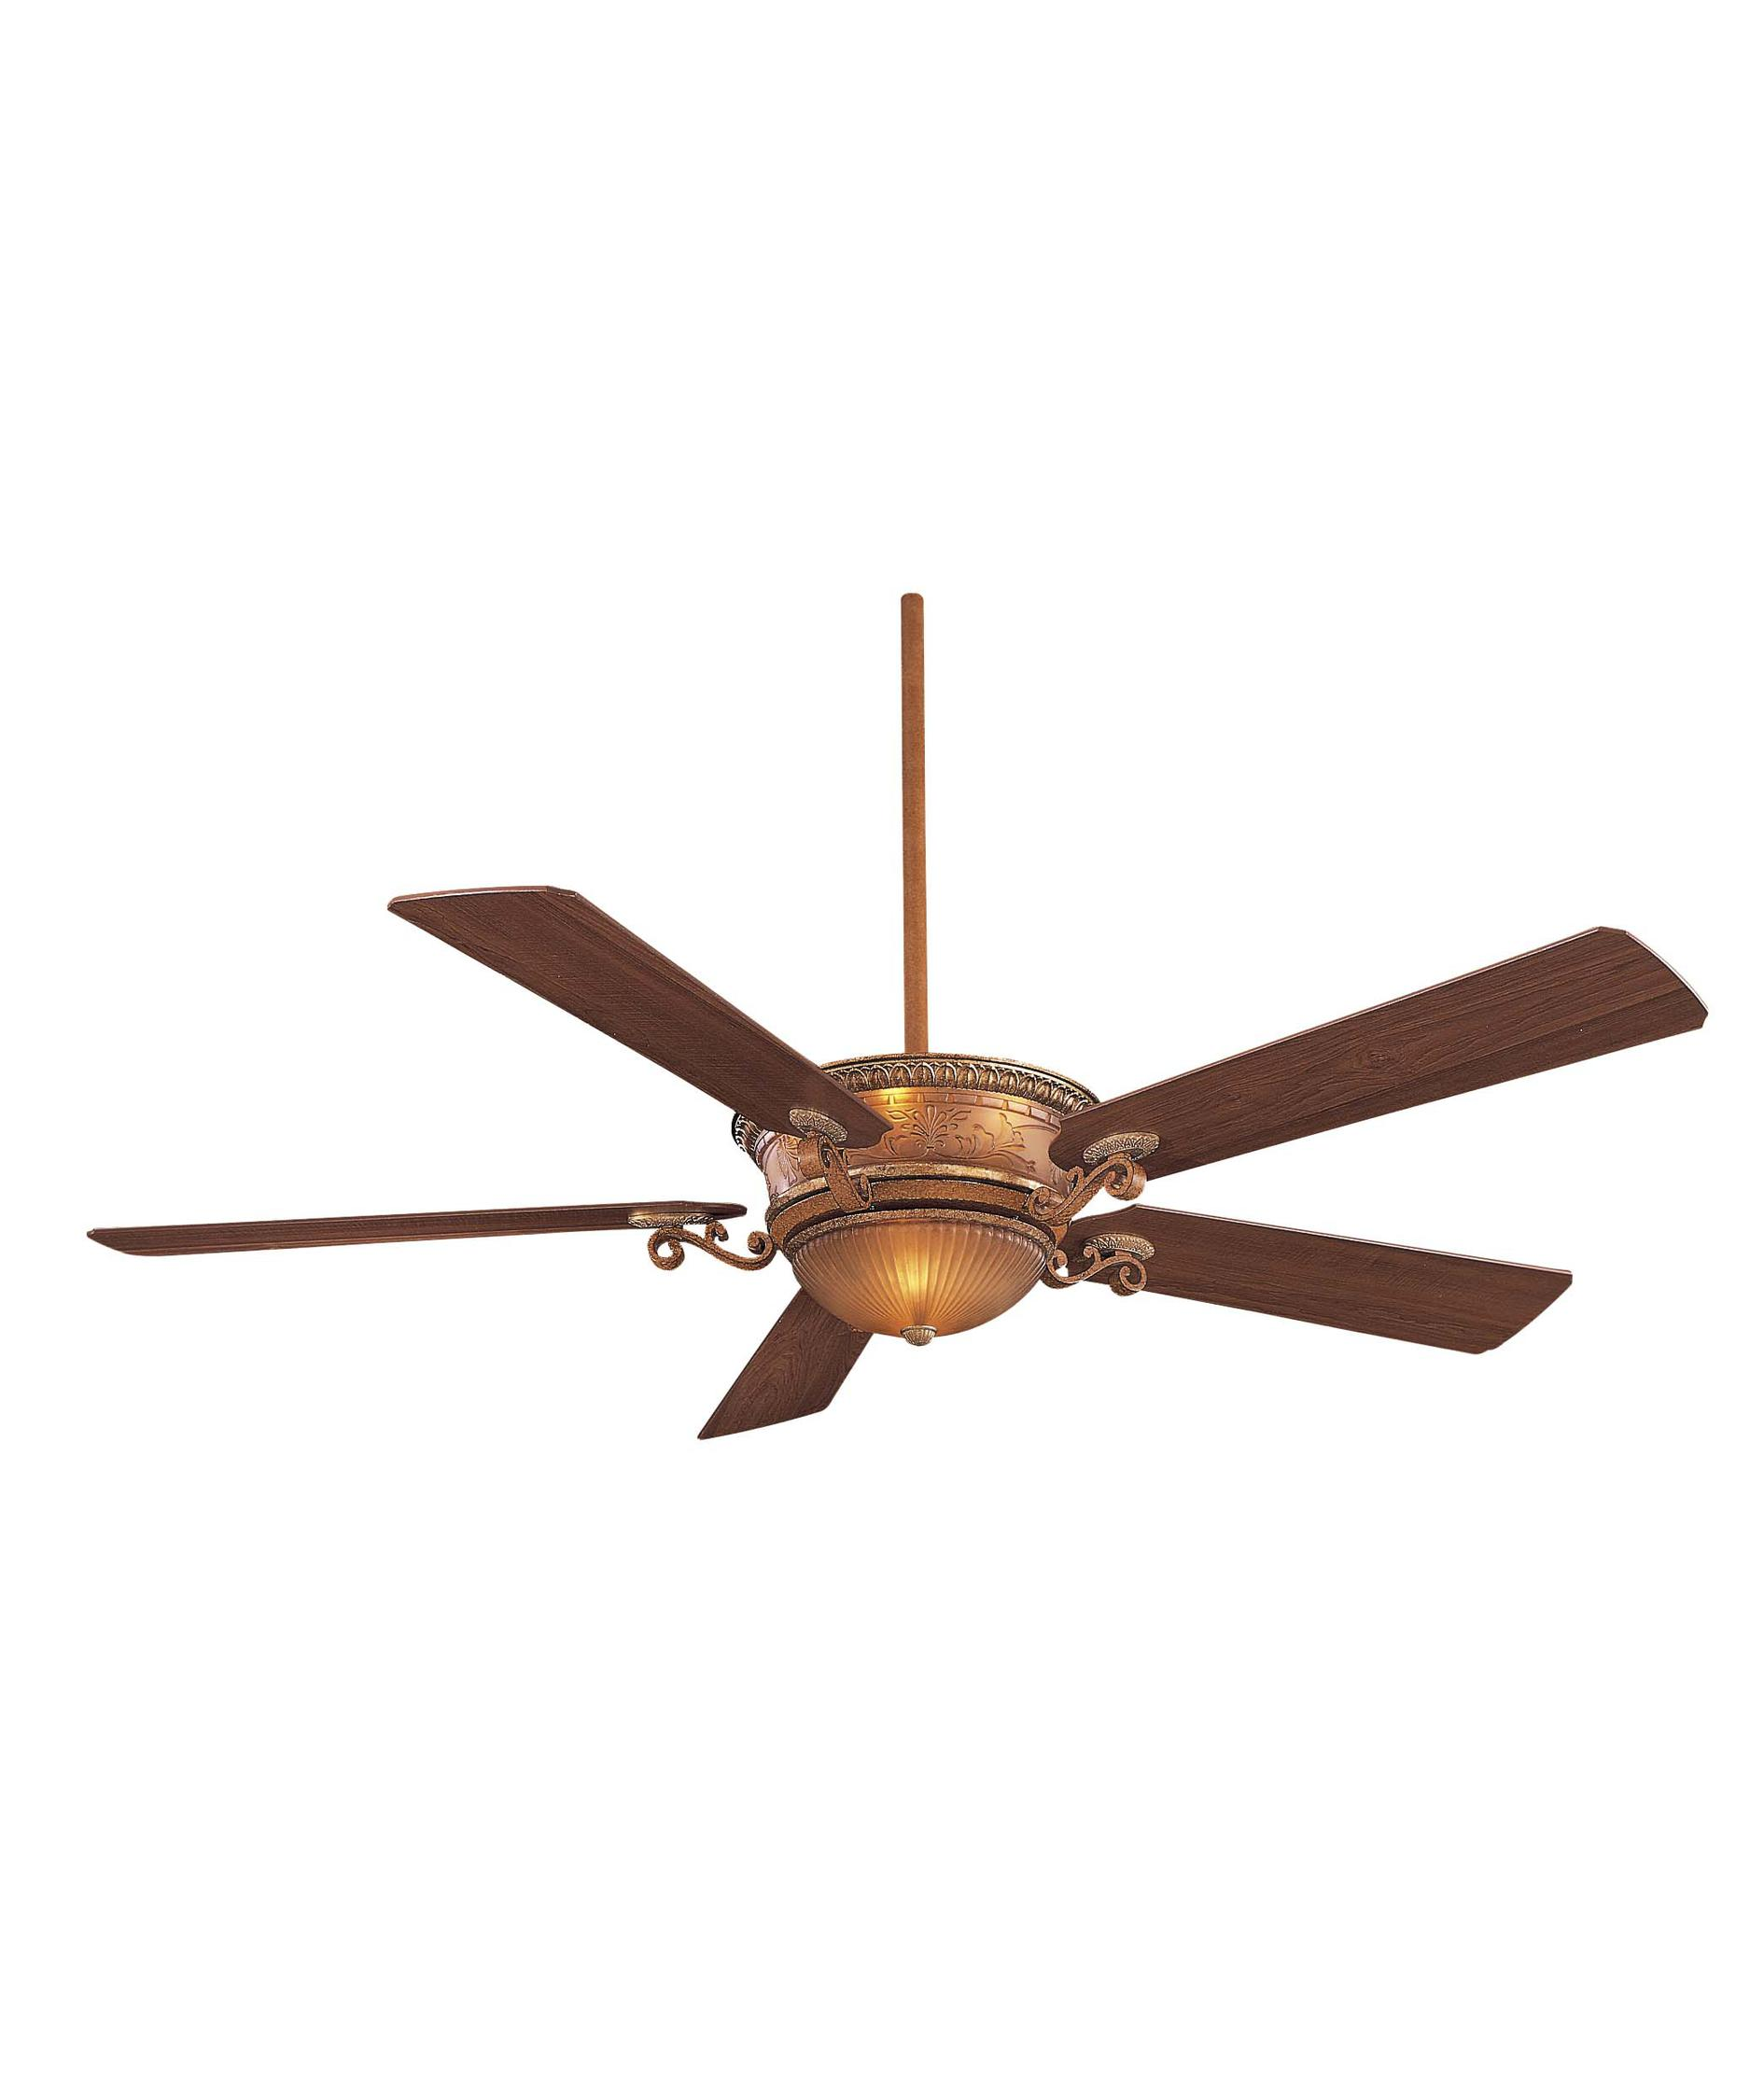 Murray Feiss Ceiling Fan Light Kit: Minka Aire F719 Treville 68 Inch Ceiling Fan With Light